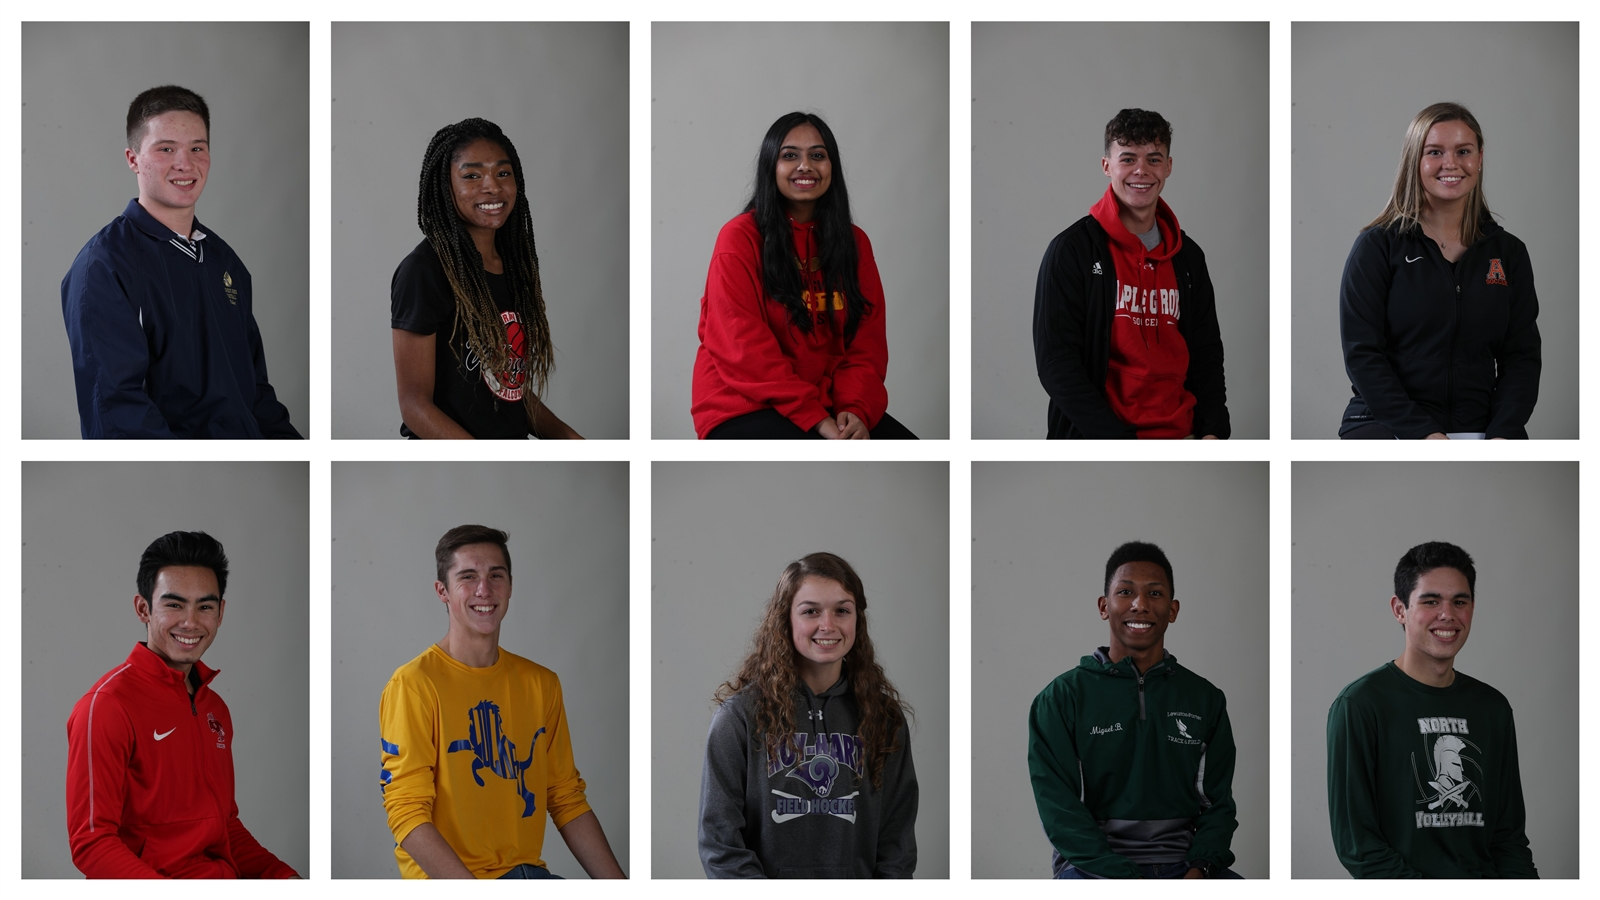 The 2018 All-Western New York Scholar-Athlete fall sports team consists of 135 winners and 926 who were honorable mention. To be nominated for the team, students must have carried a 90-plus average for the previous six semesters and been a starter or significant player in their fall sport. The scholar-athlete team is open to seniors from Western New York's 100-plus public and private schools. They are to be featured in a News poster page on Dec. 16. More information is available at www.section6.e1b.org.